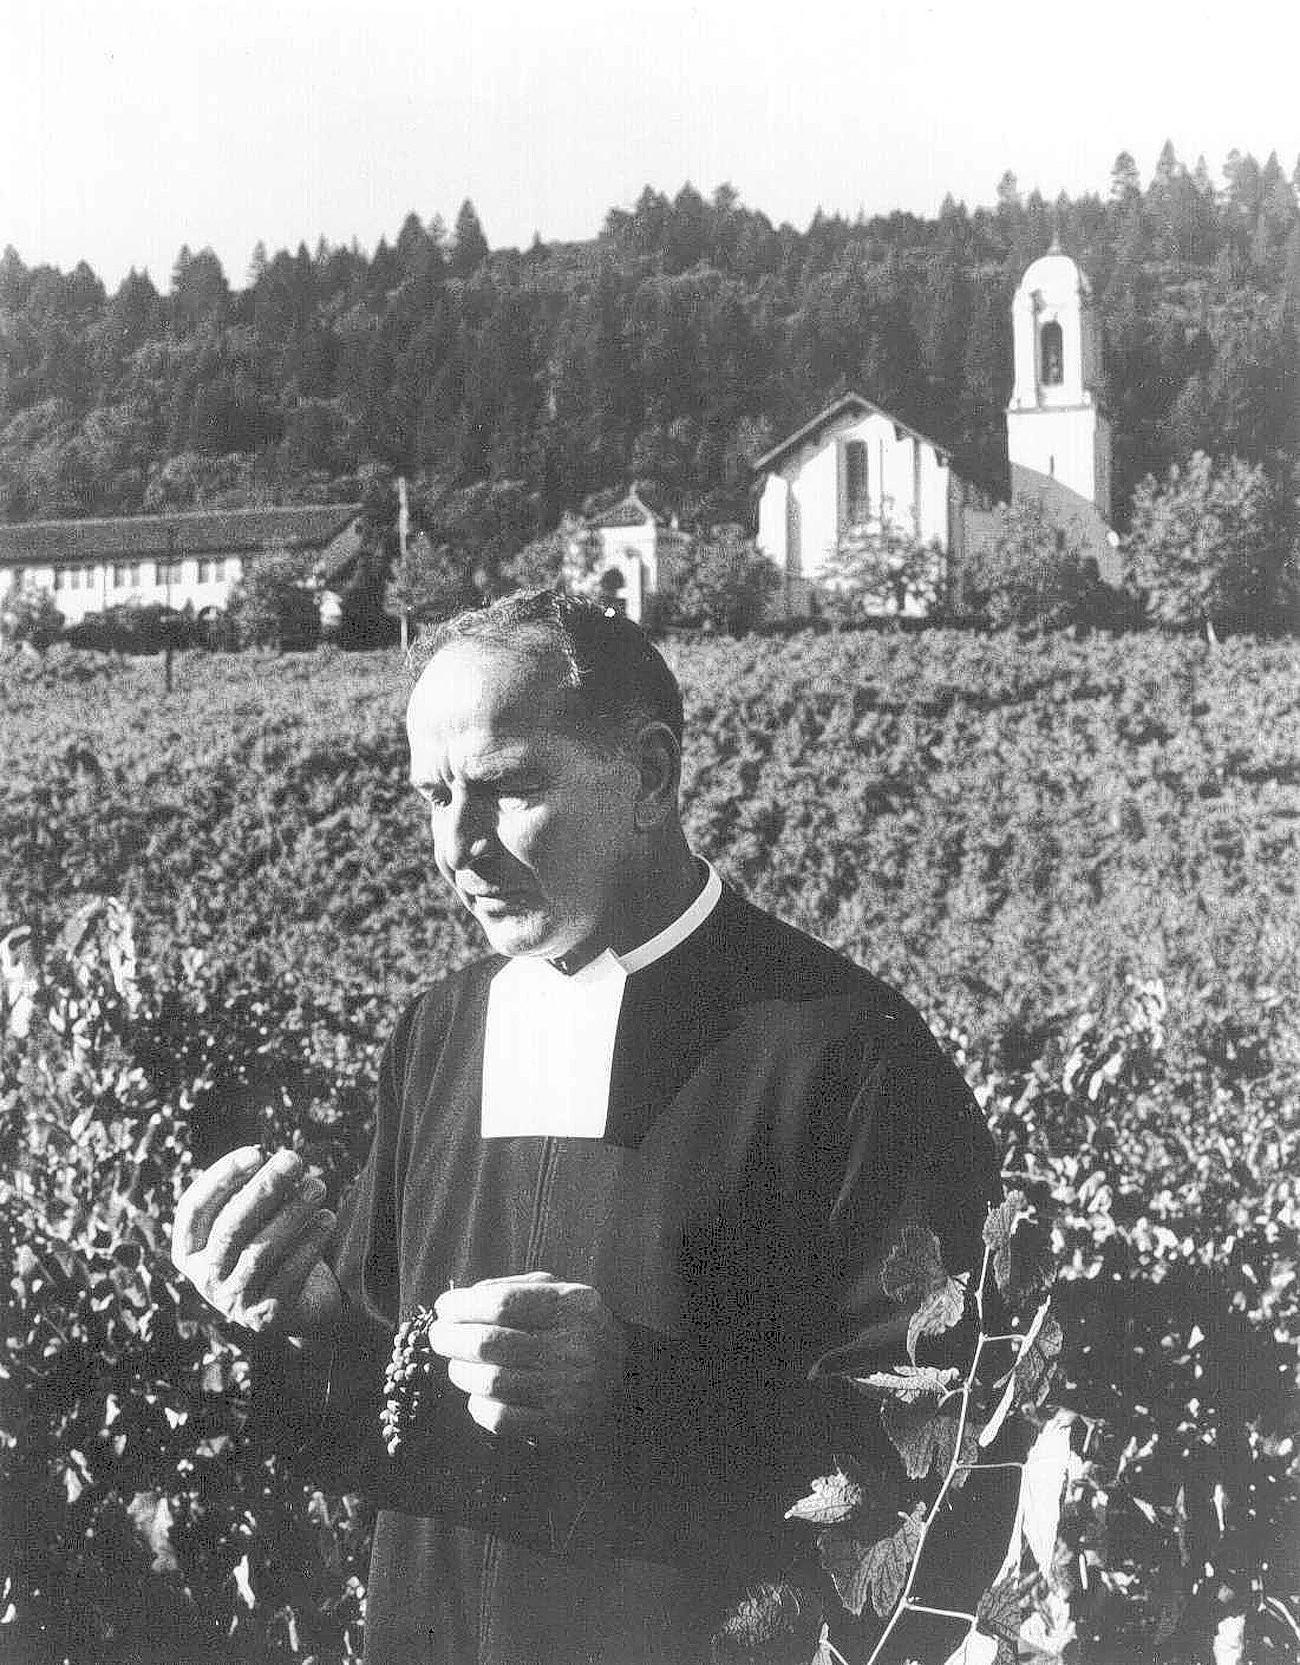 Brother Timothy Diener was a high school teacher who ushered Napa Valley onto the world wine stage.